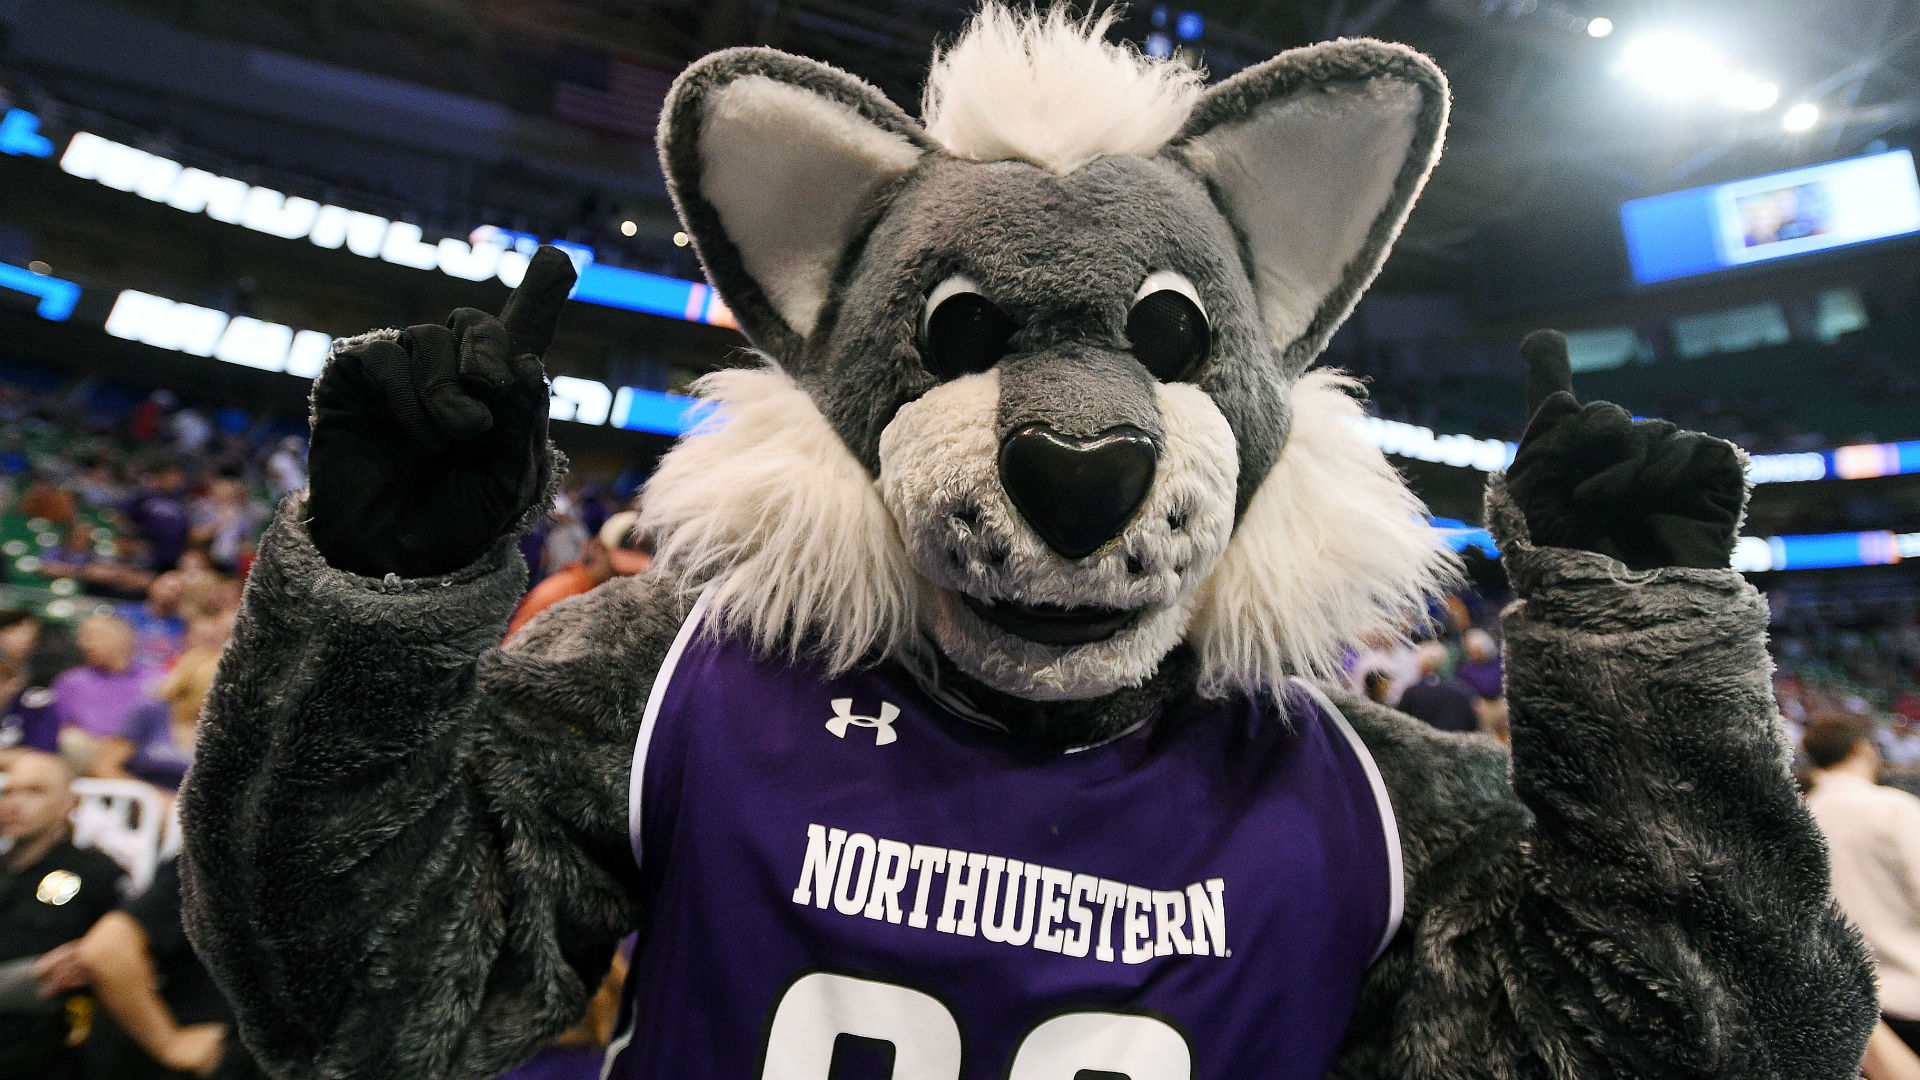 Crying Northwestern kid returning to TV in new March Madness ad